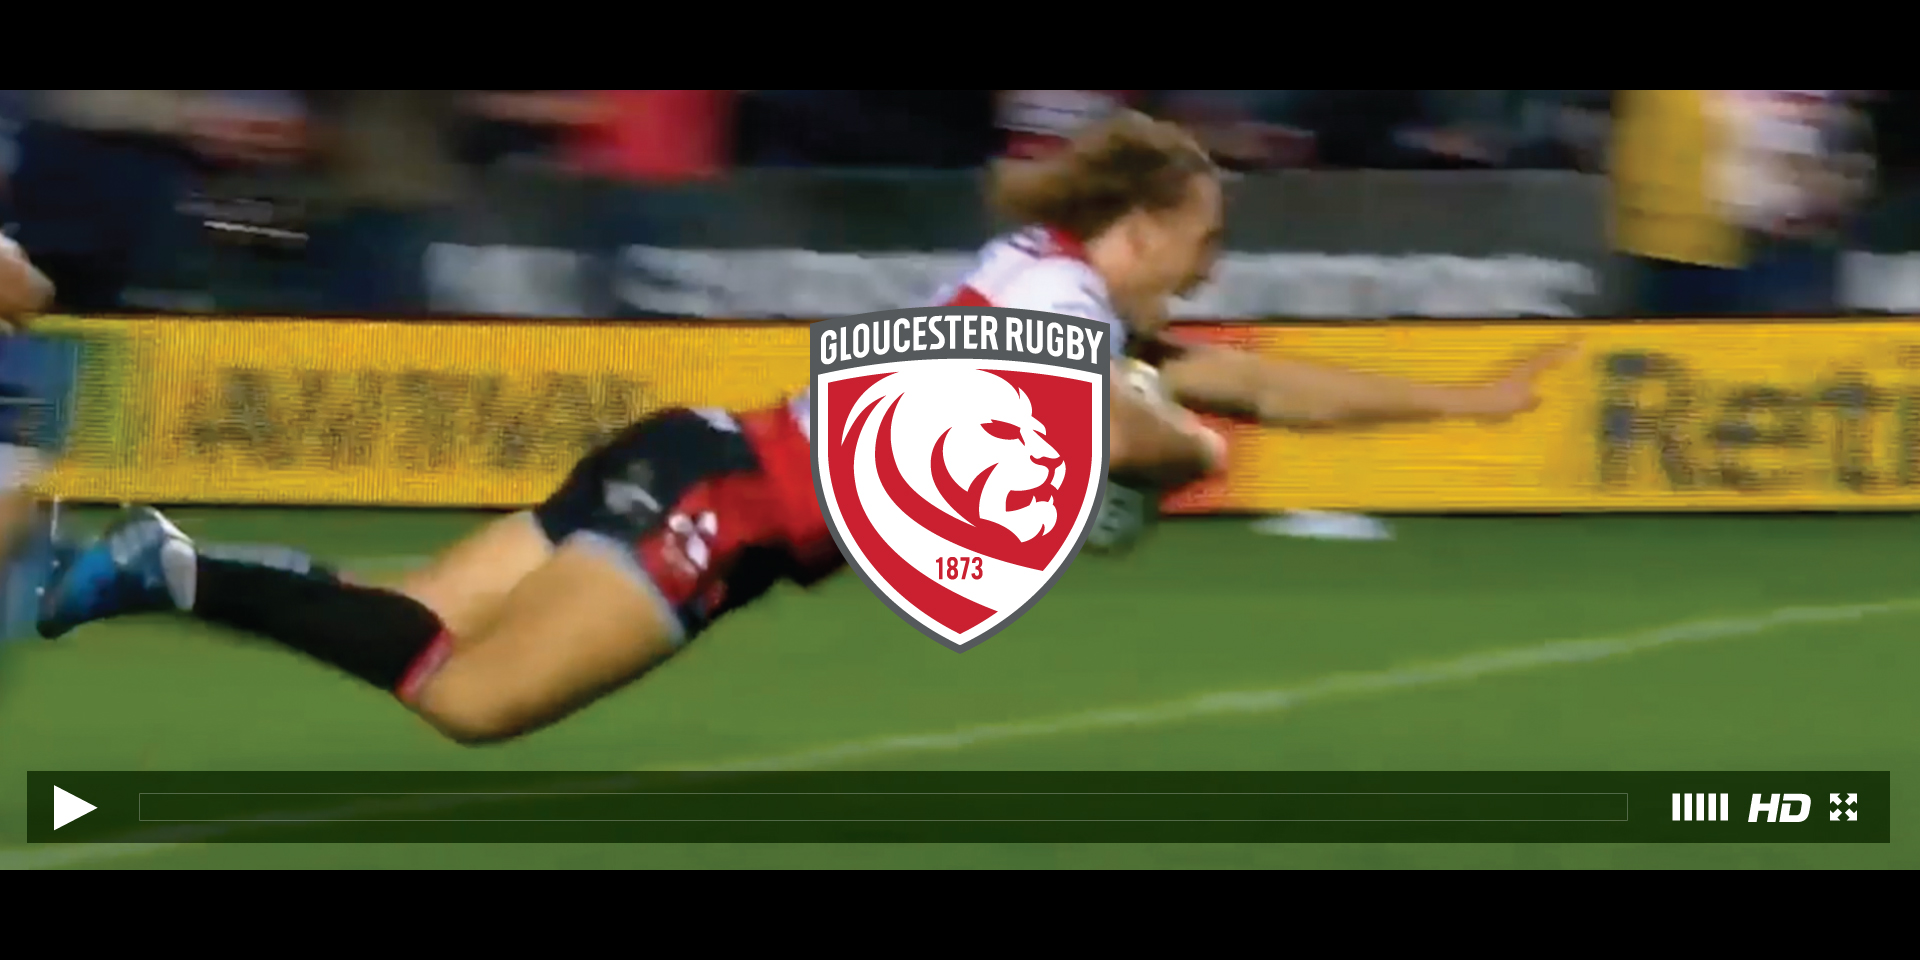 B009-2066_Gloucester_Rugby_Brand_Launch_Video_Wide_4.jpg